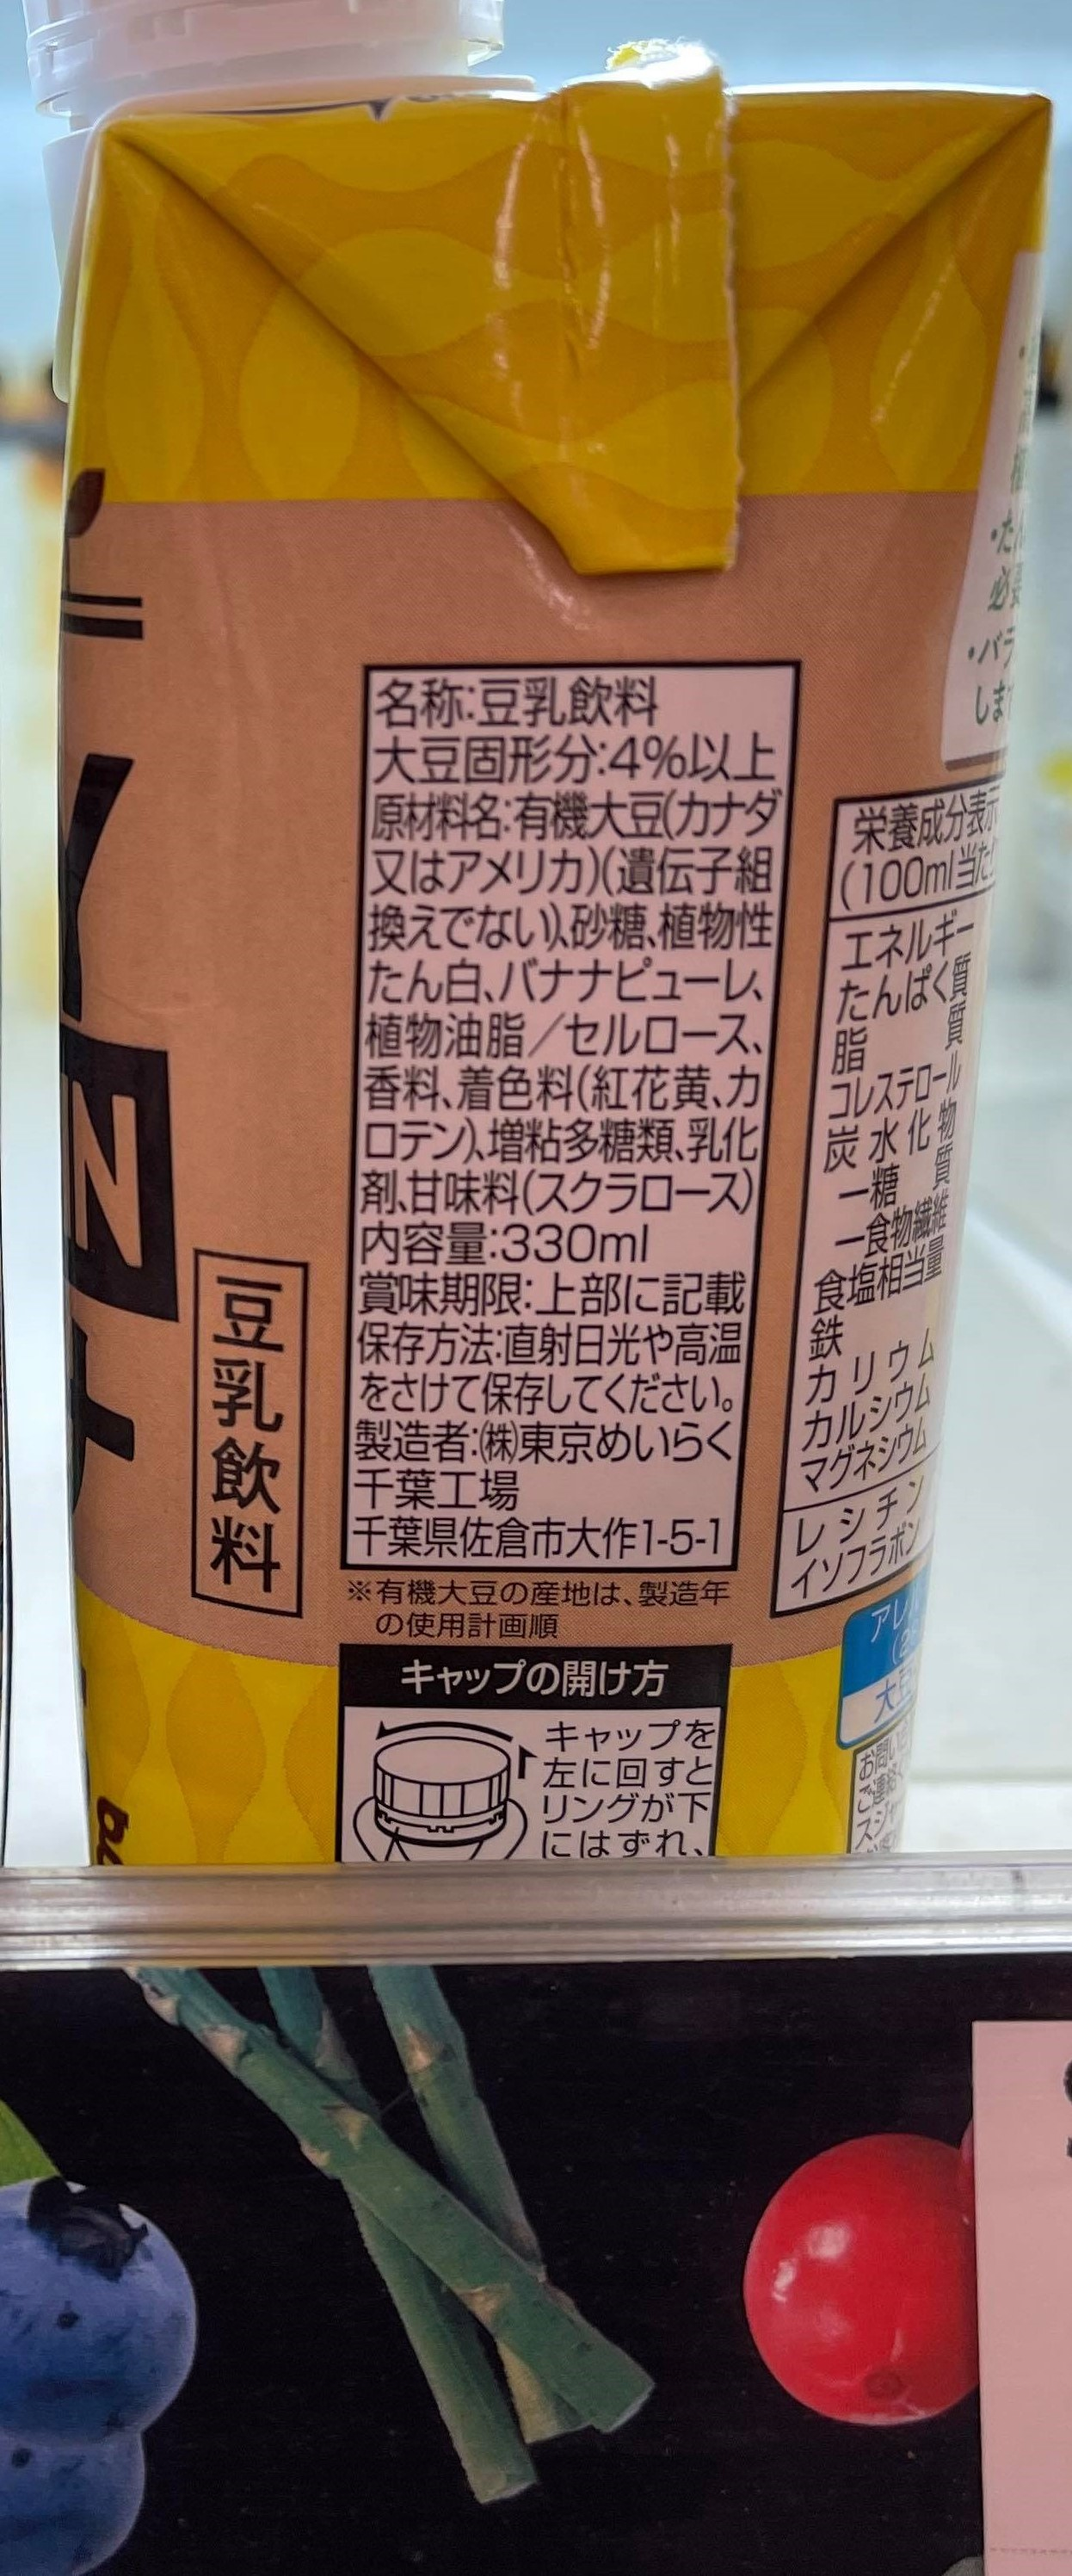 Sujahta Meiraku Soy Protein Banana ingredient list